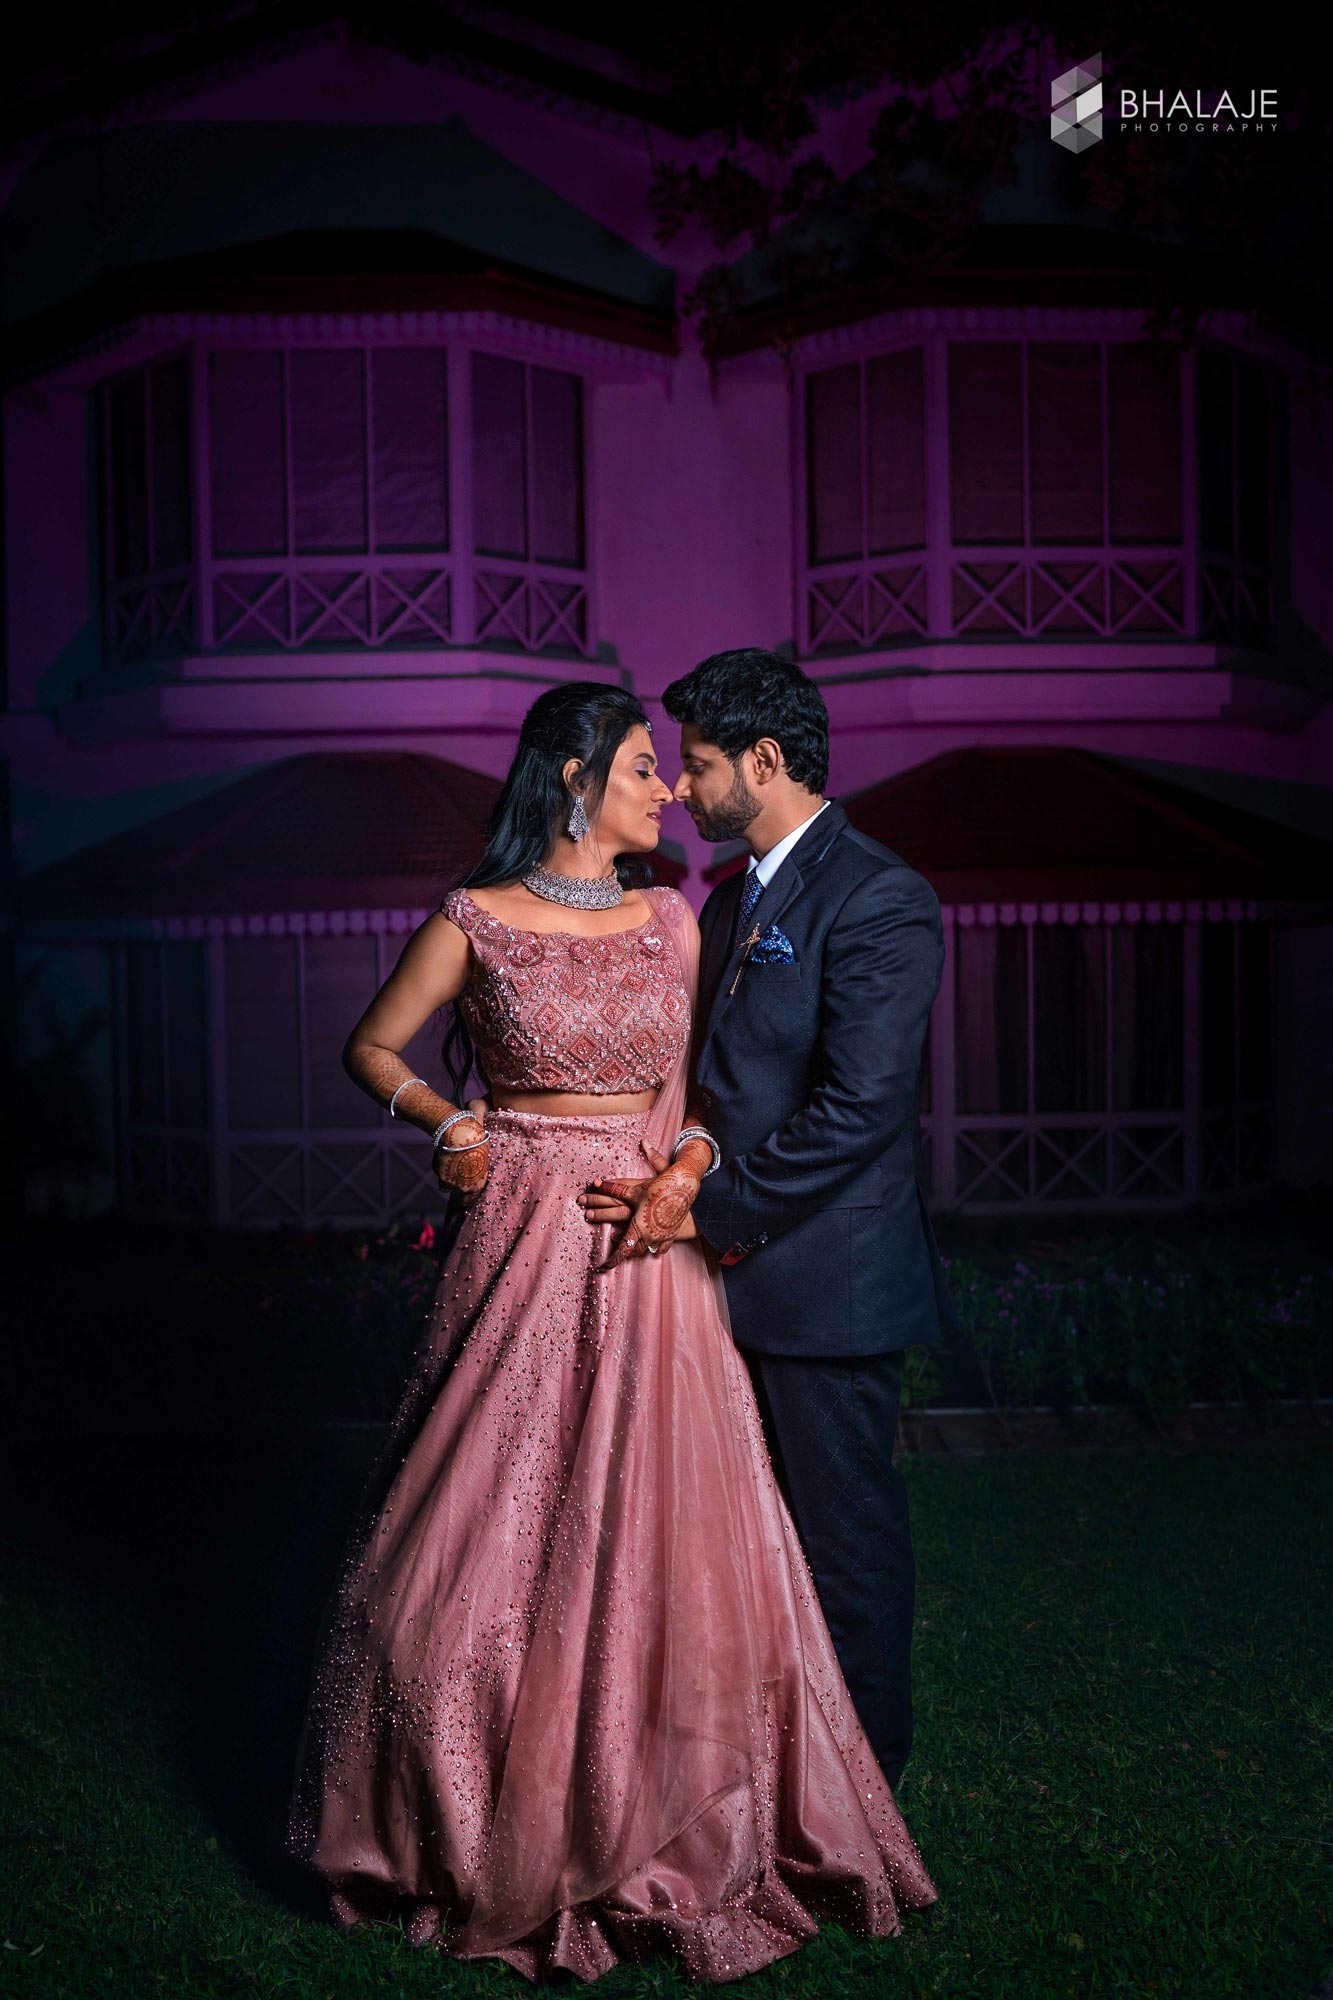 Christian Wedding Photography, Muslim Wedding photography, Professional Photography nearme, Candid photographers in Chennai,Wedding Photographer.